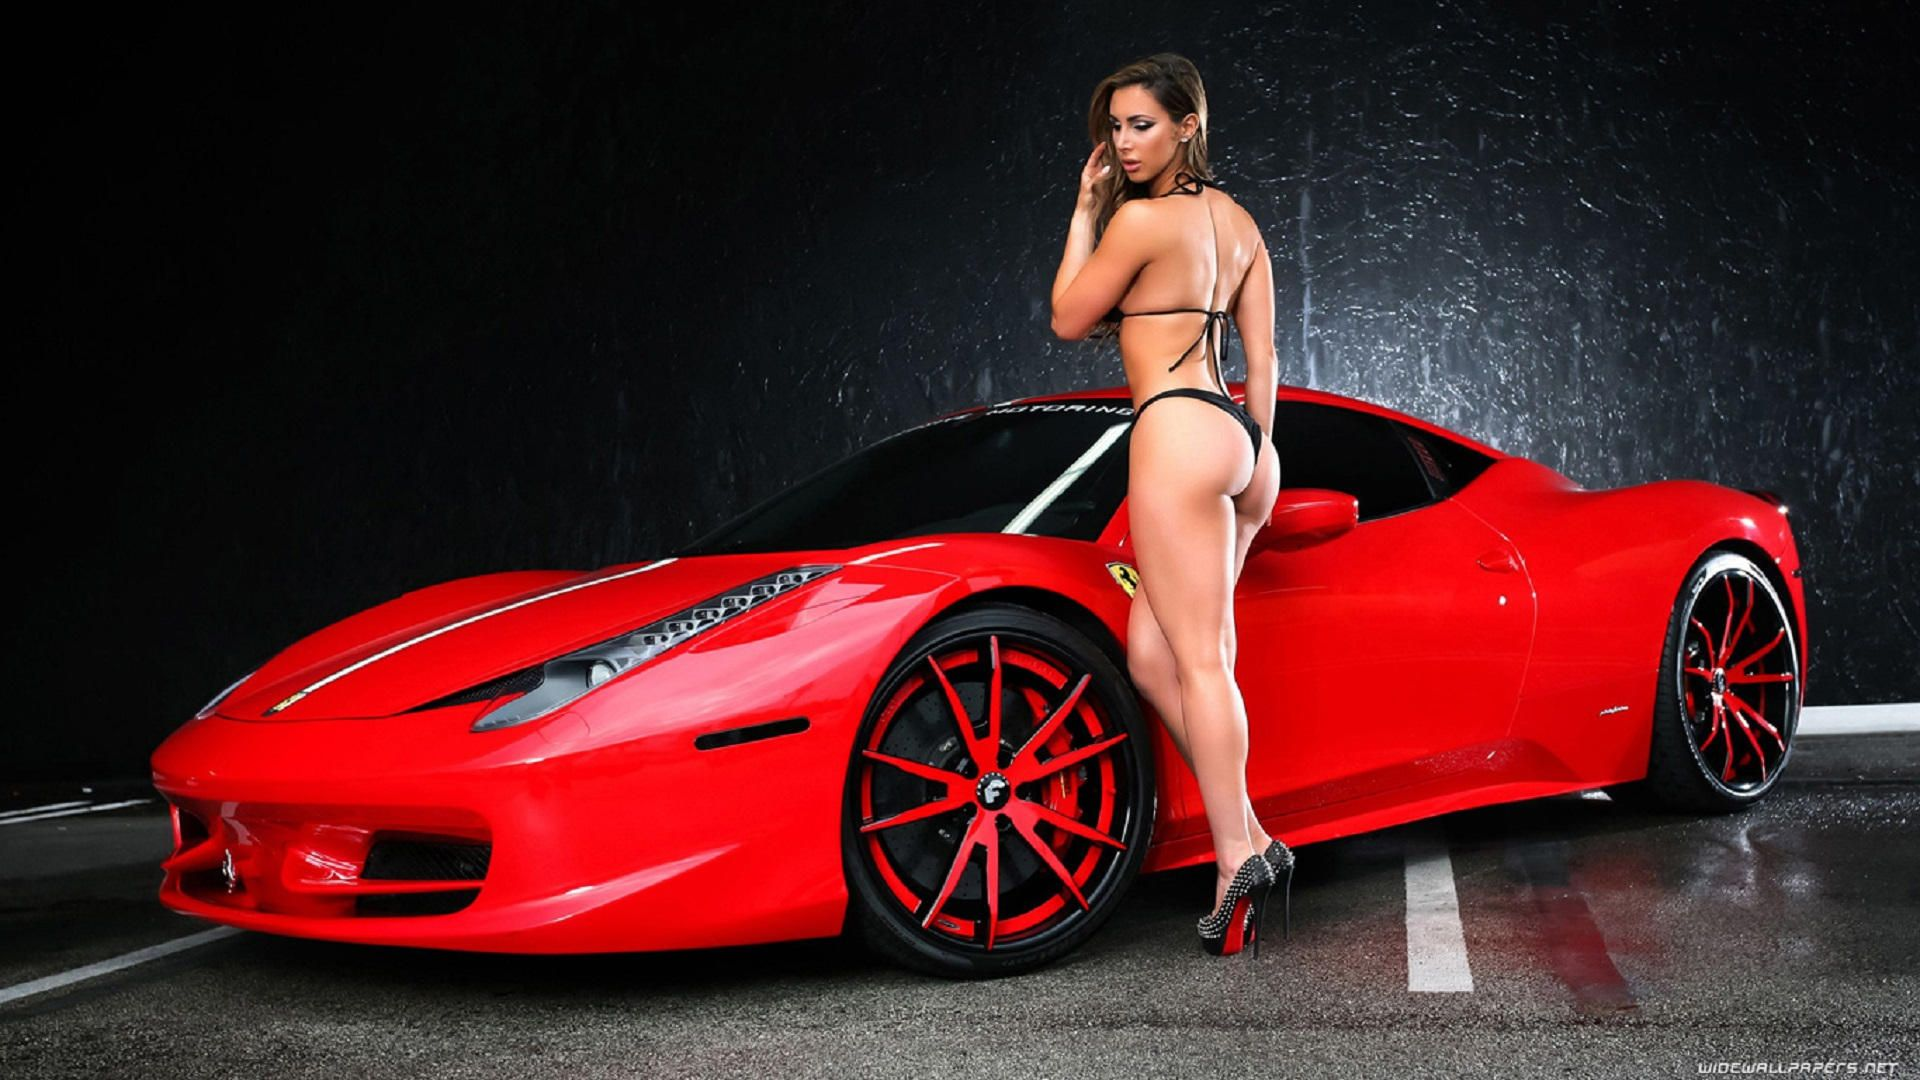 Hot sexy girls and cars wallpaper hd